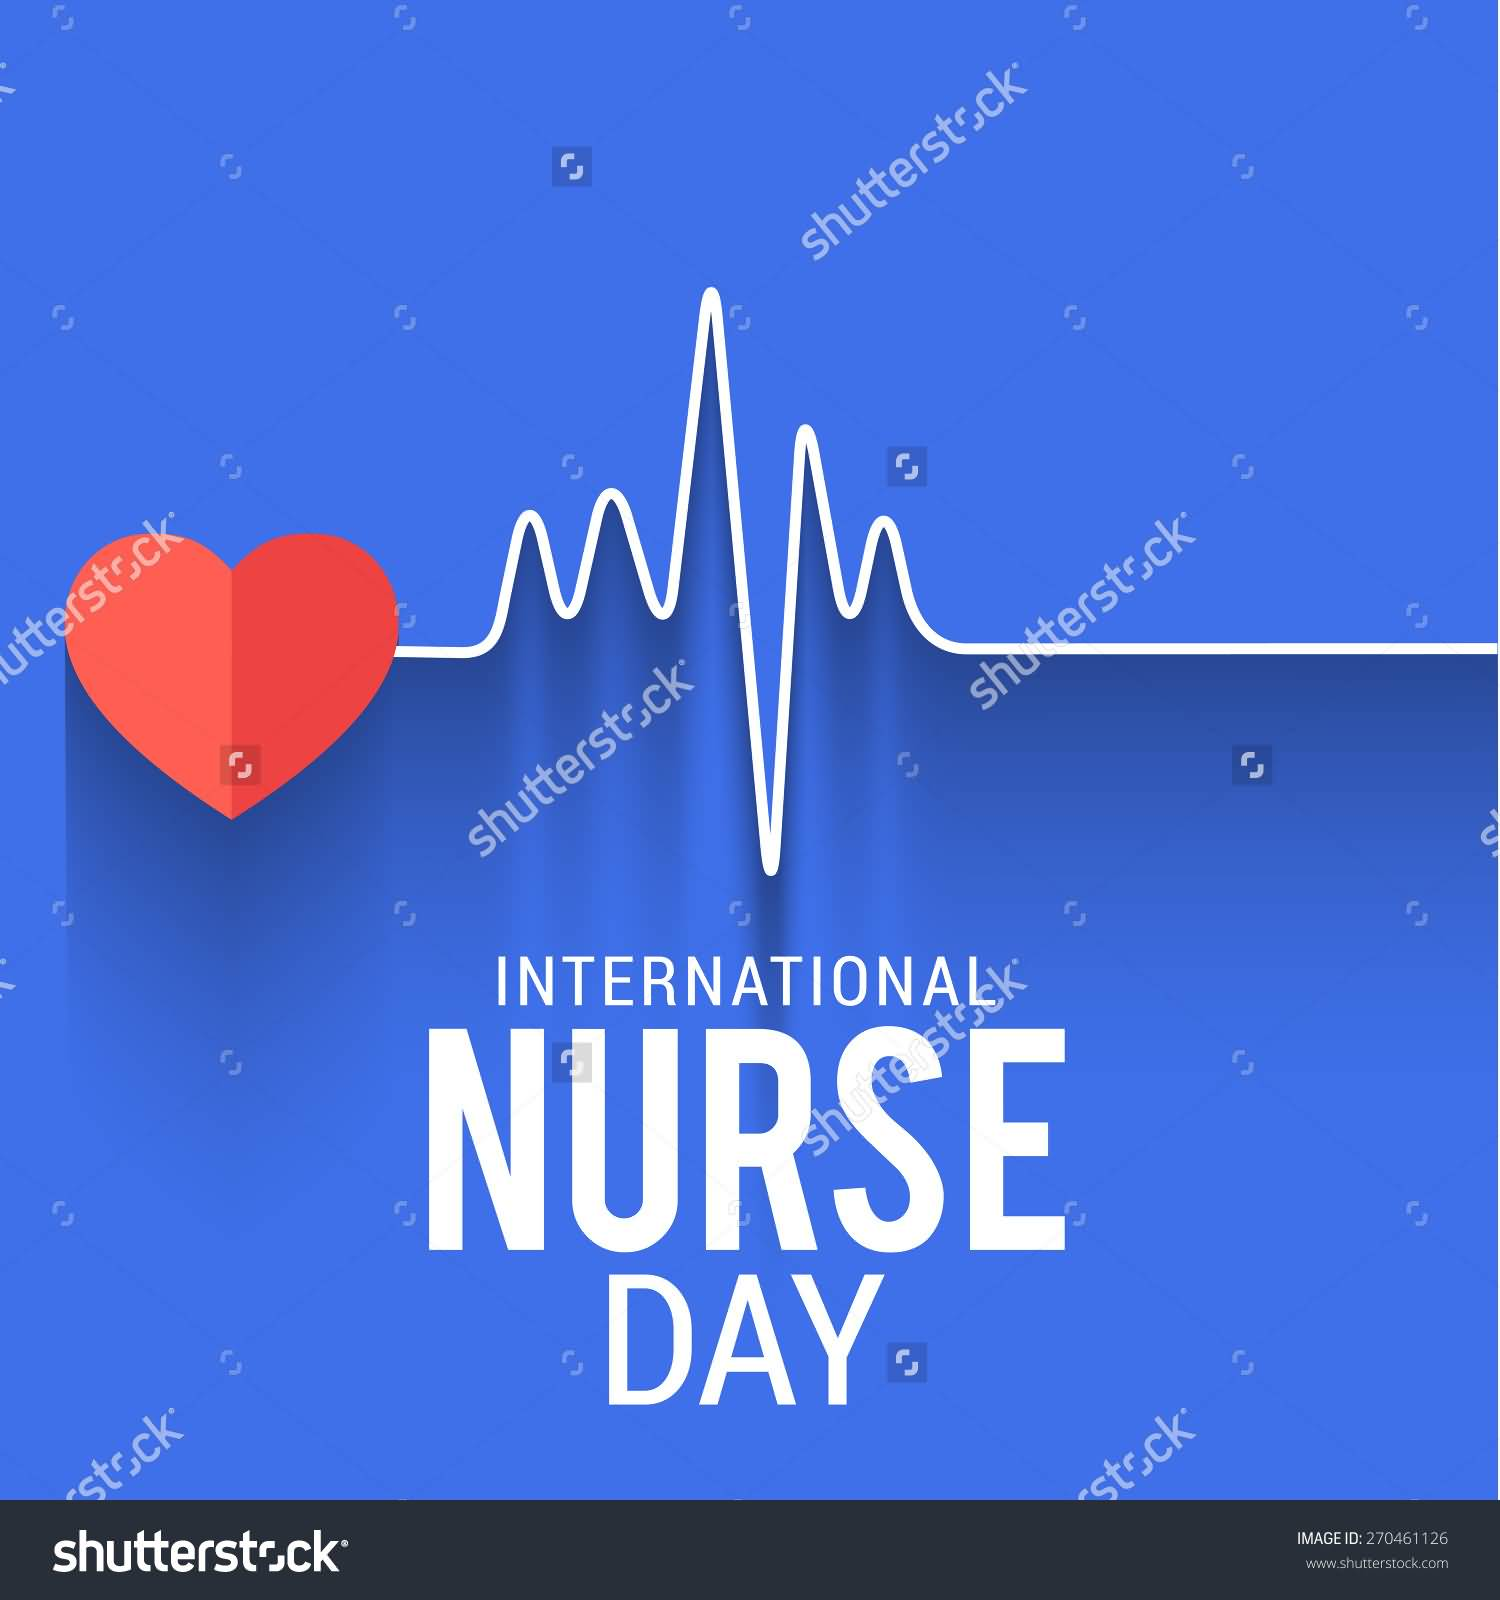 50 best international nurses day 2017 pictures and images international nurses day heart beat illustration m4hsunfo Choice Image